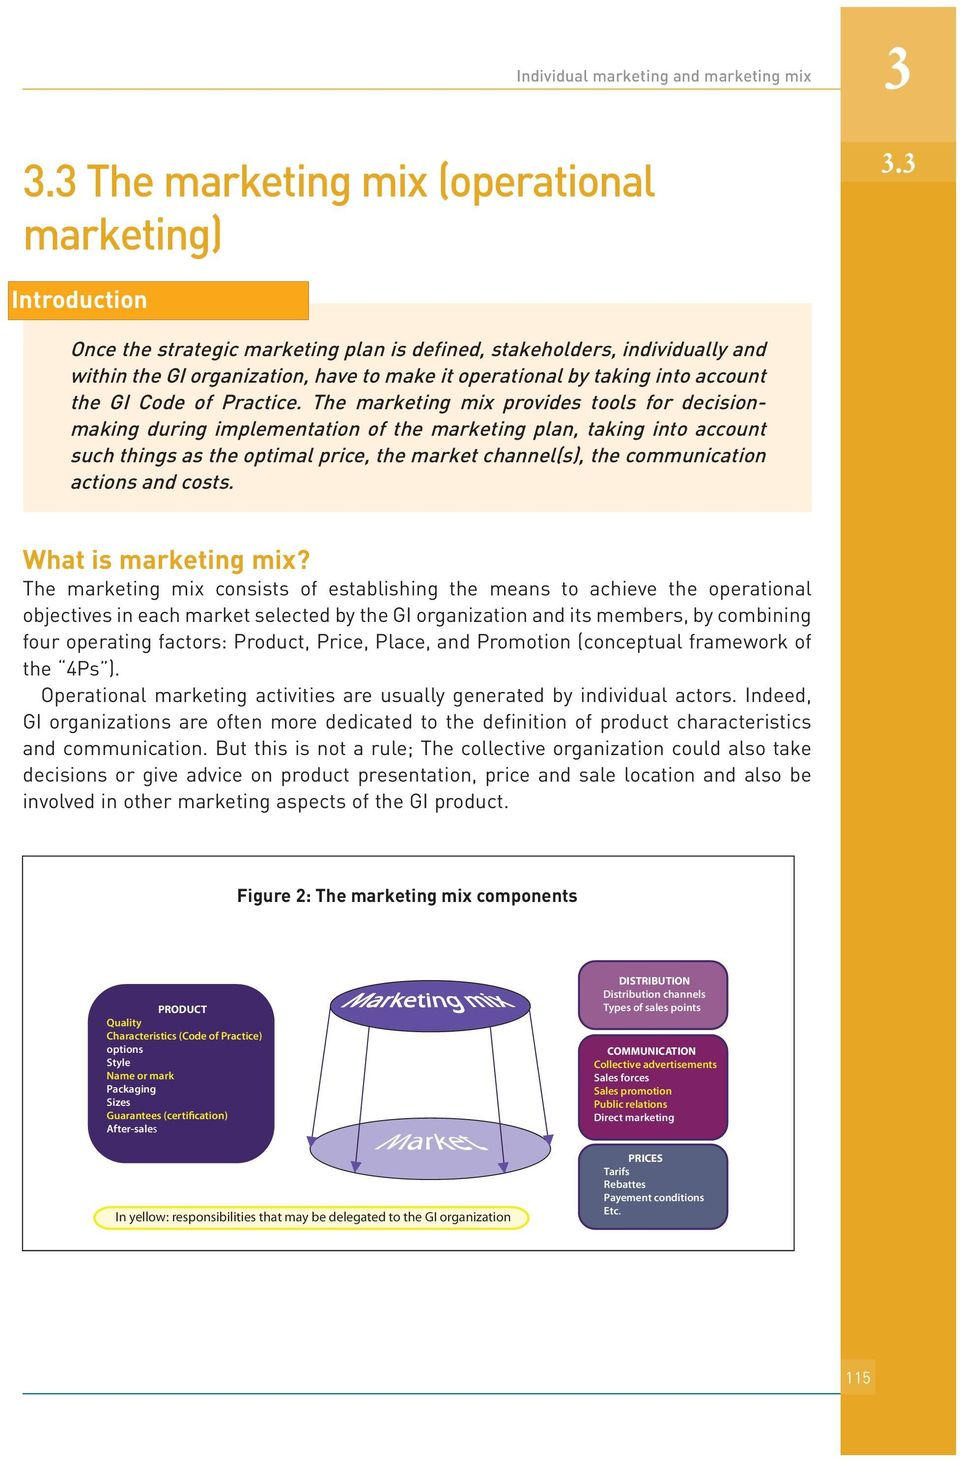 The marketing mix provides tools for decisionmaking during implementation of the marketing plan, taking into account such things as the optimal price, the market channel(s), the communication actions